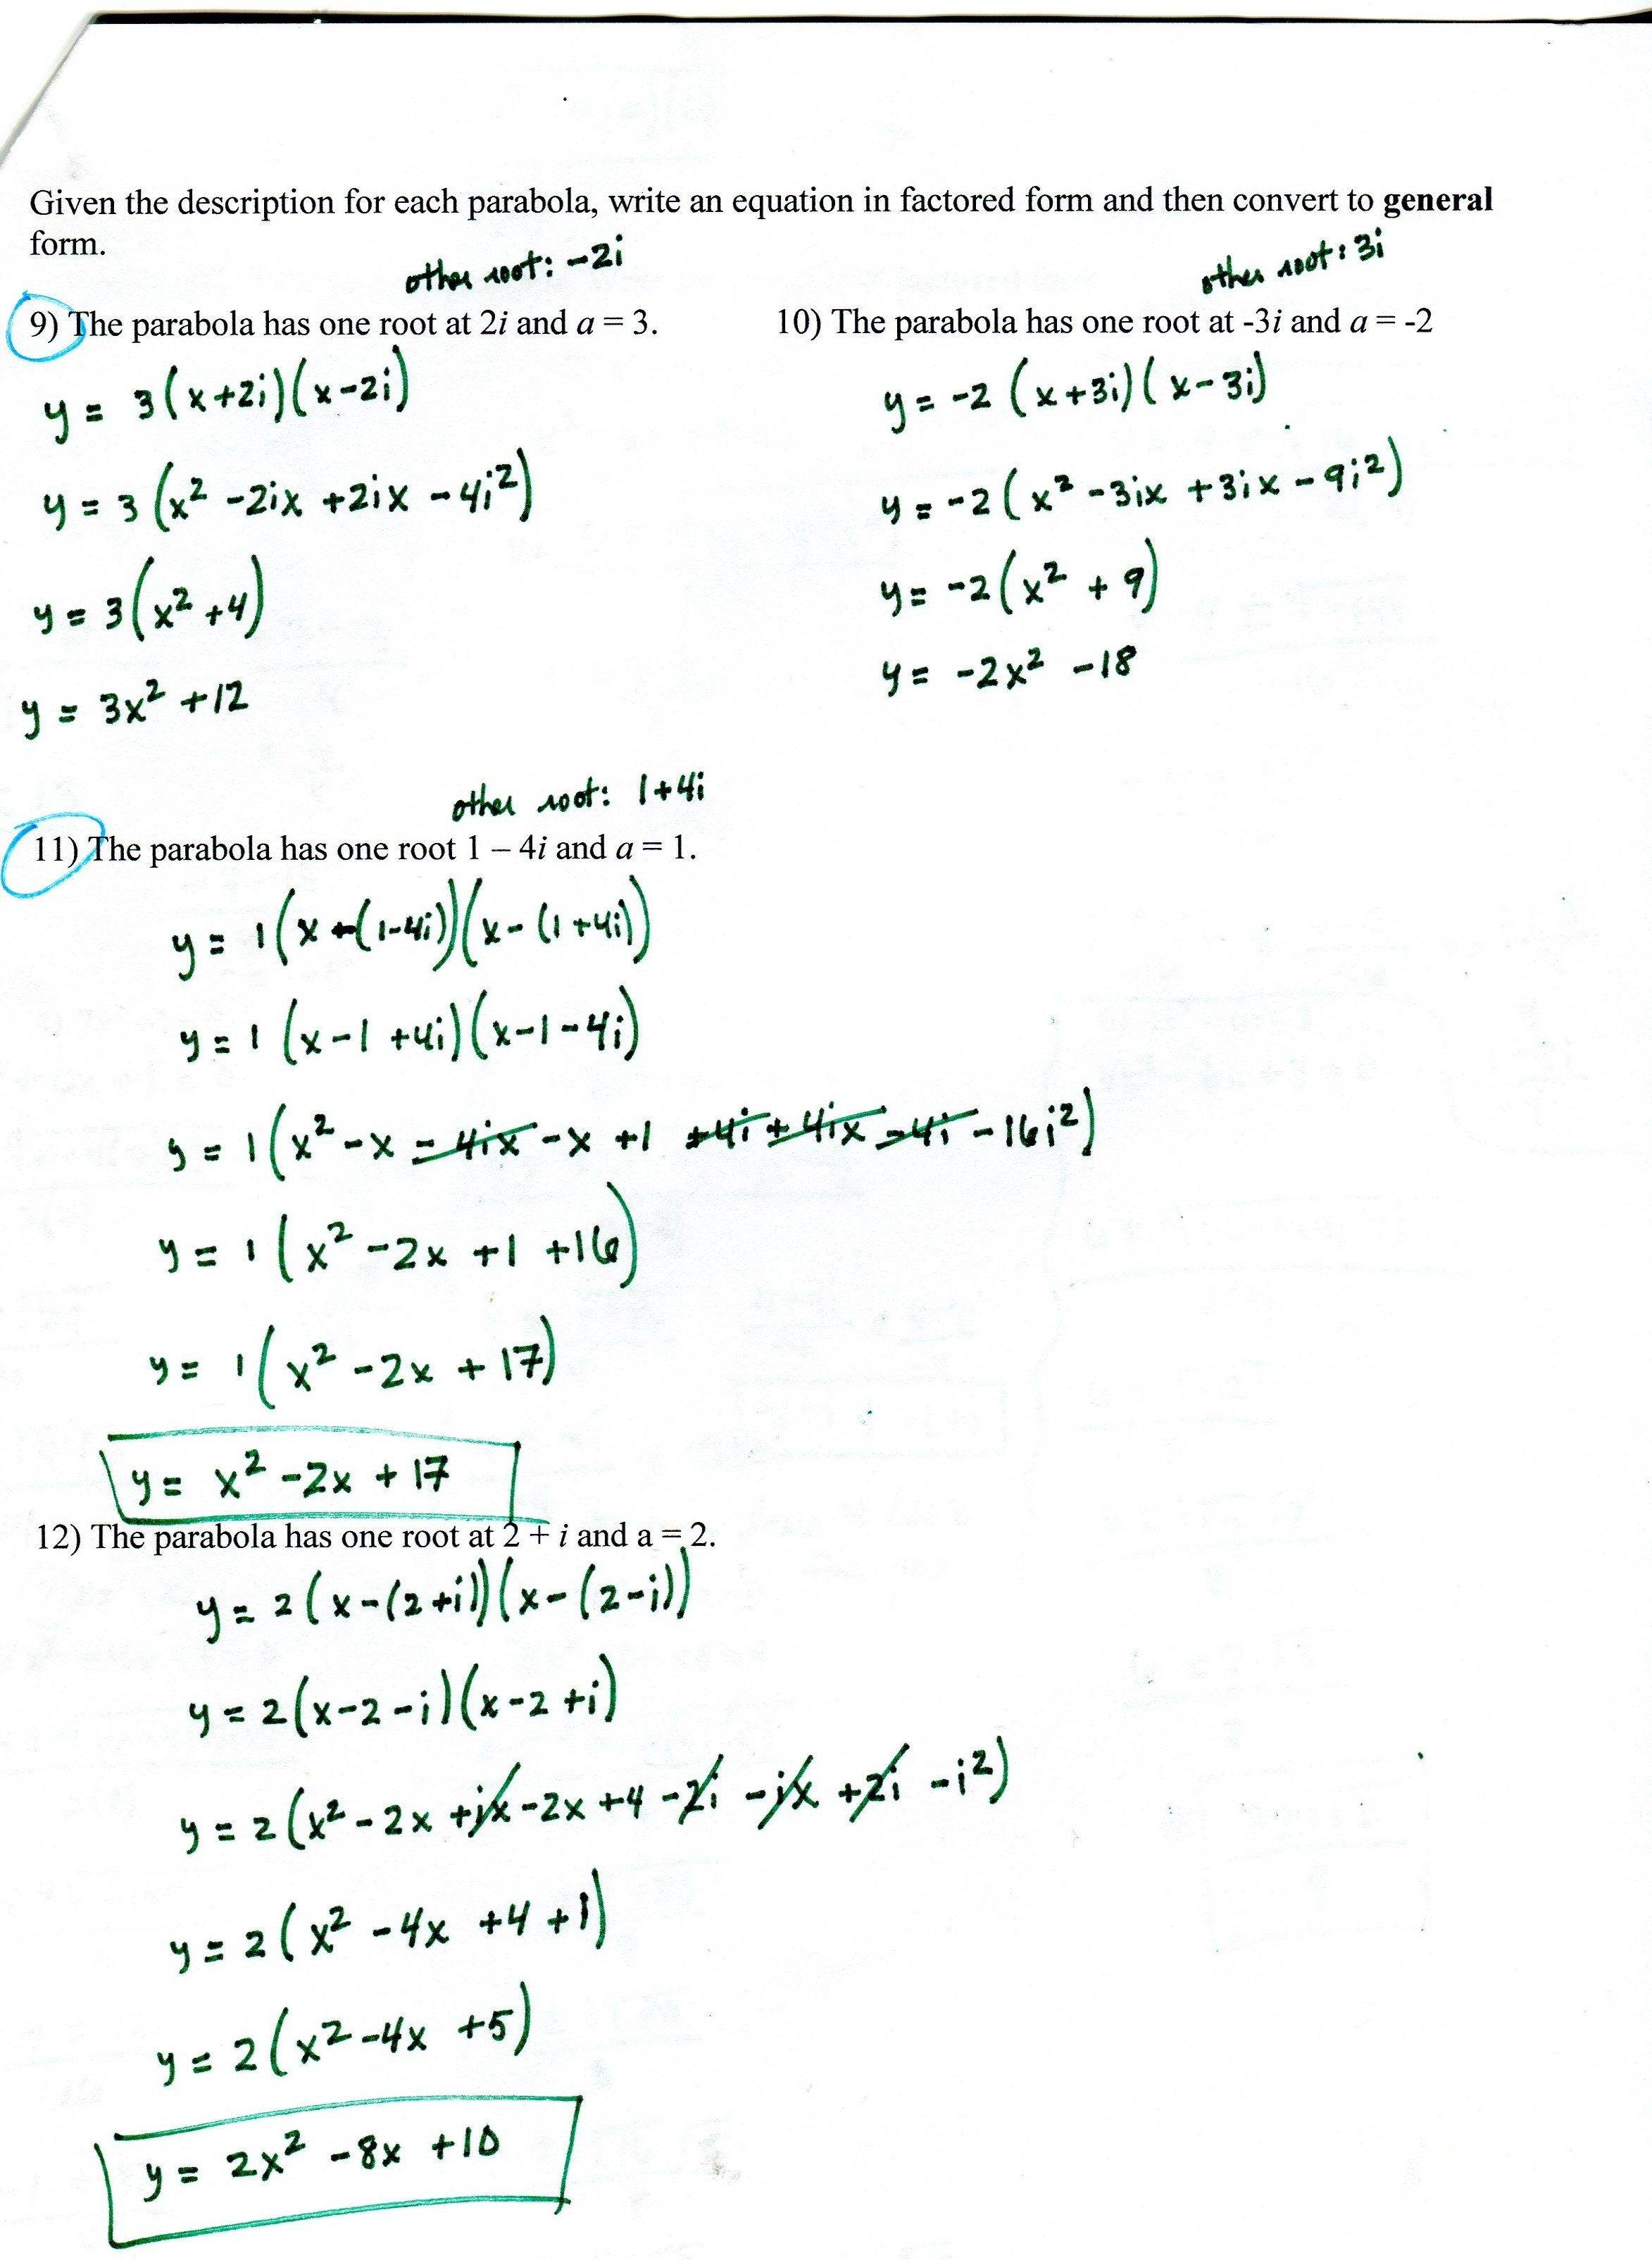 Logarithm Worksheet With Answers Christmas Worksheets Relapse Regarding Logarithm Worksheet With Answers